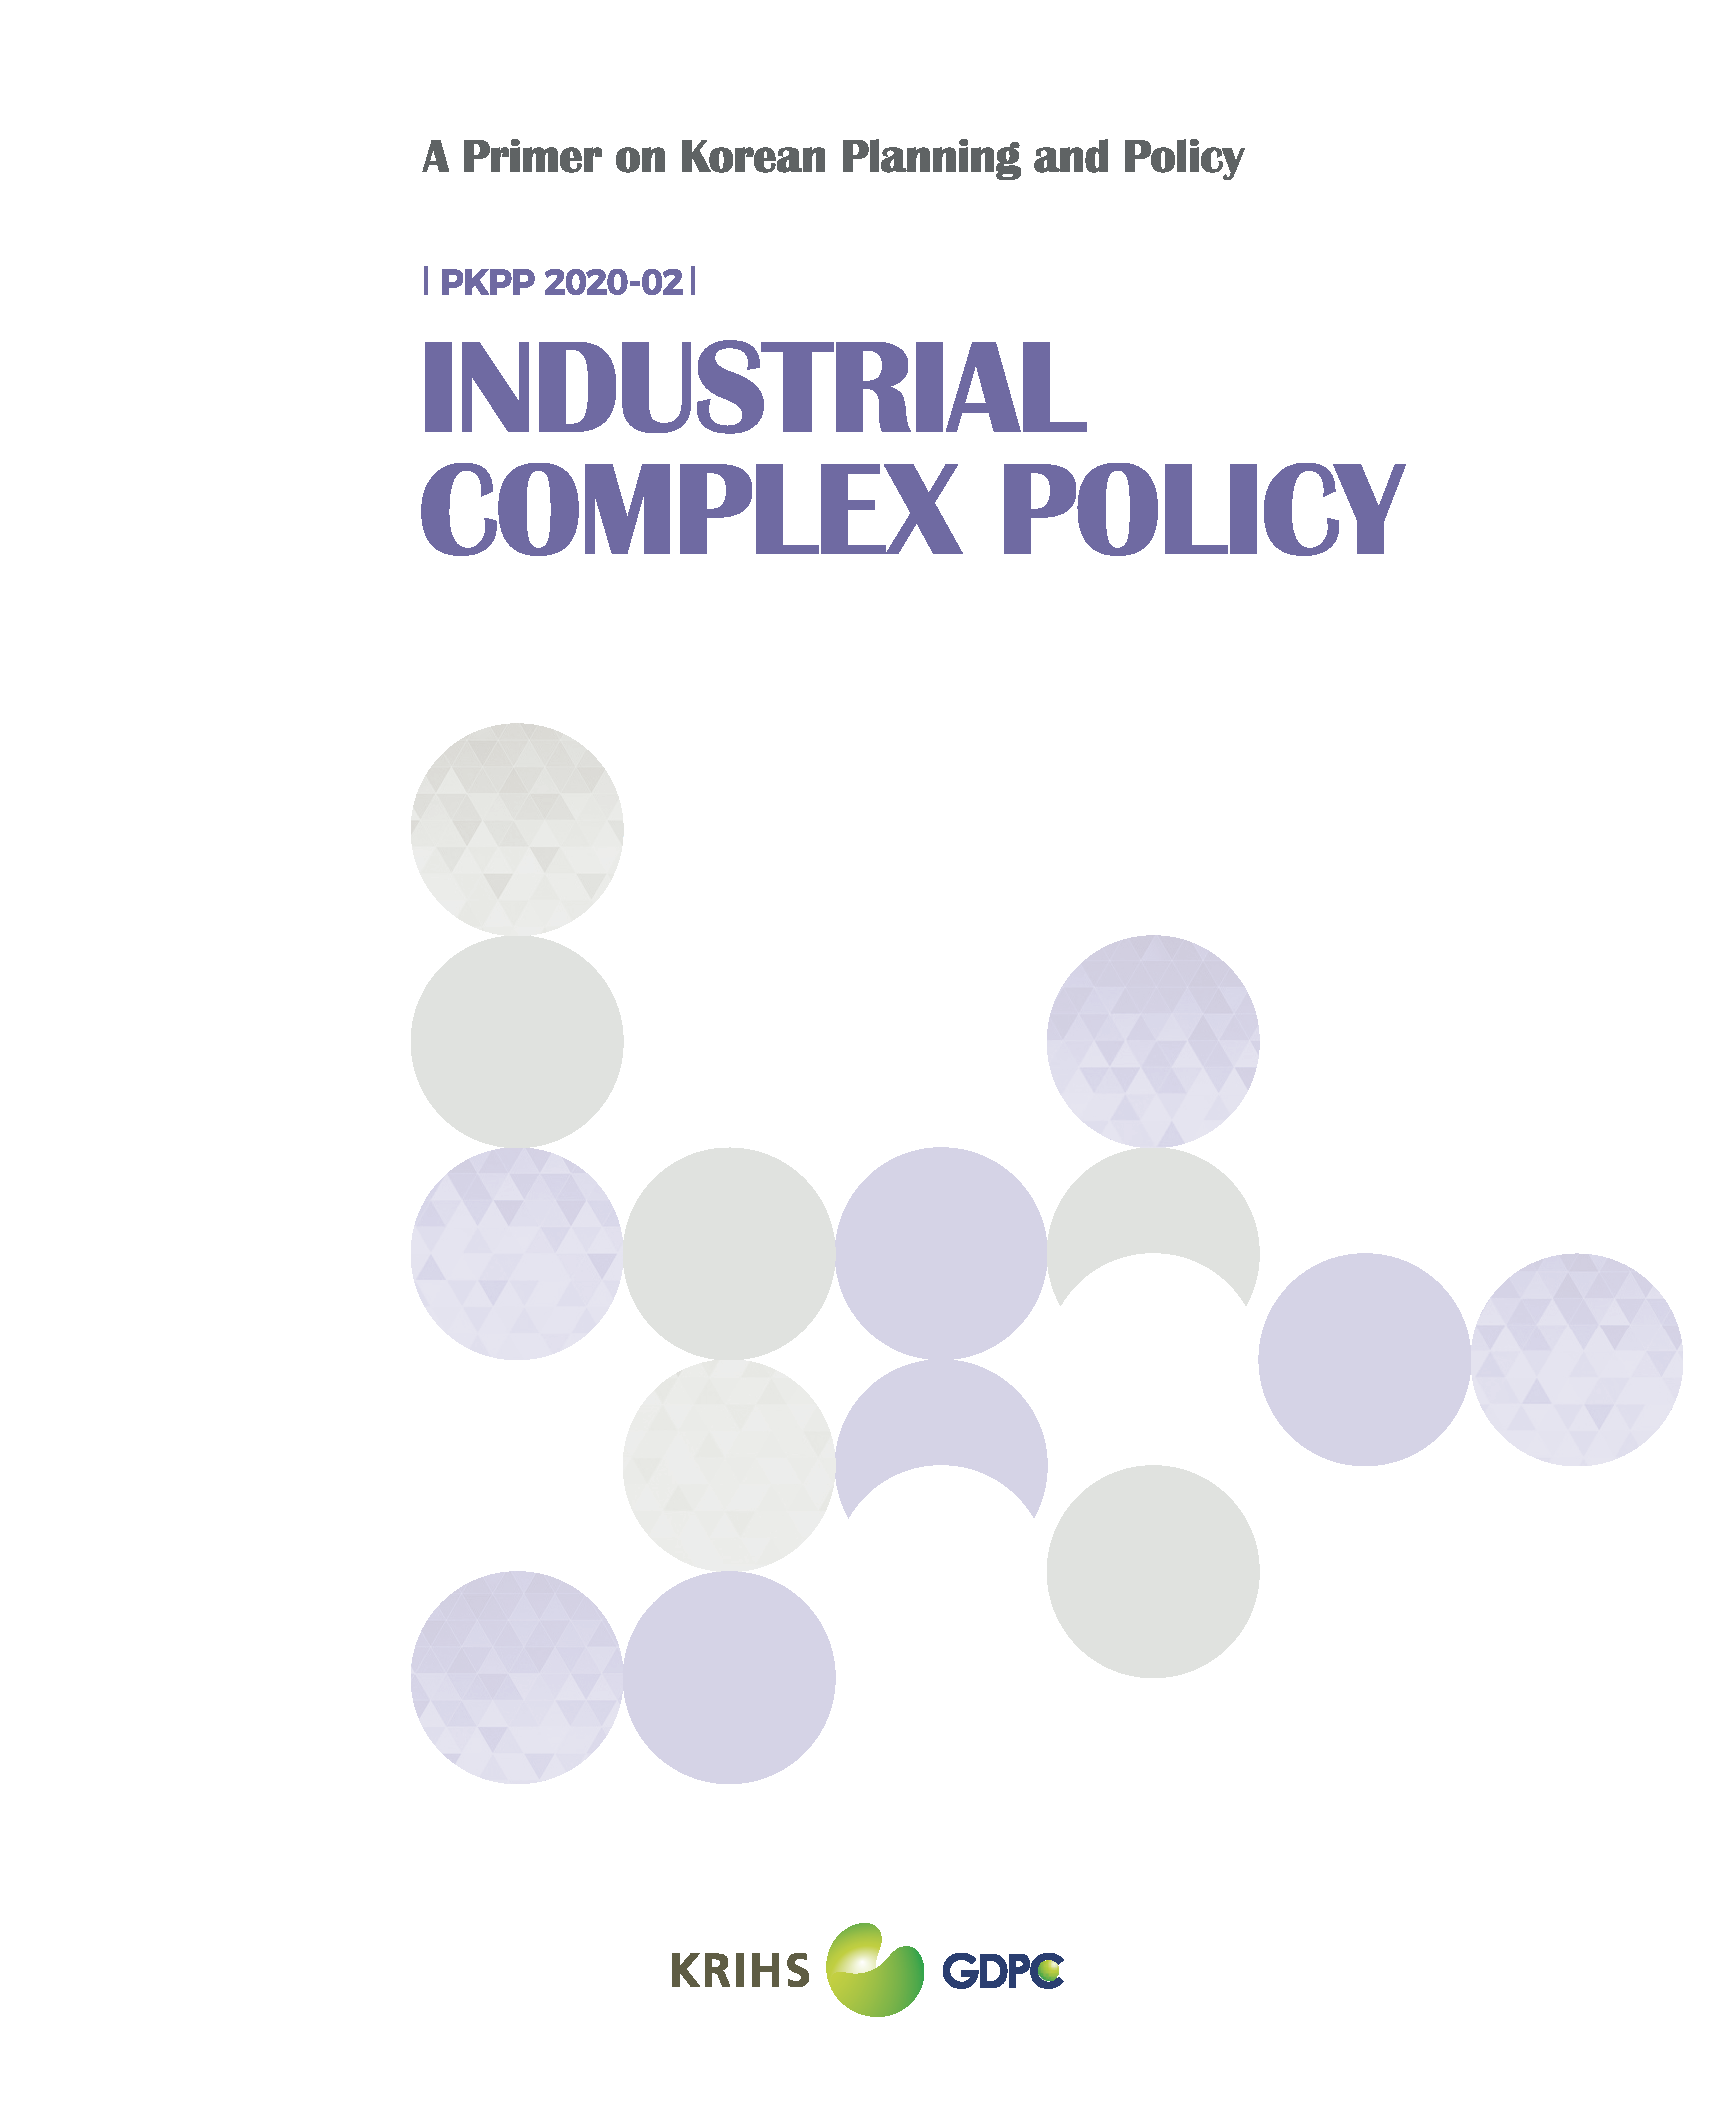 (A Primer on Korean Planning and Policy) Industrial Complex Policy표지